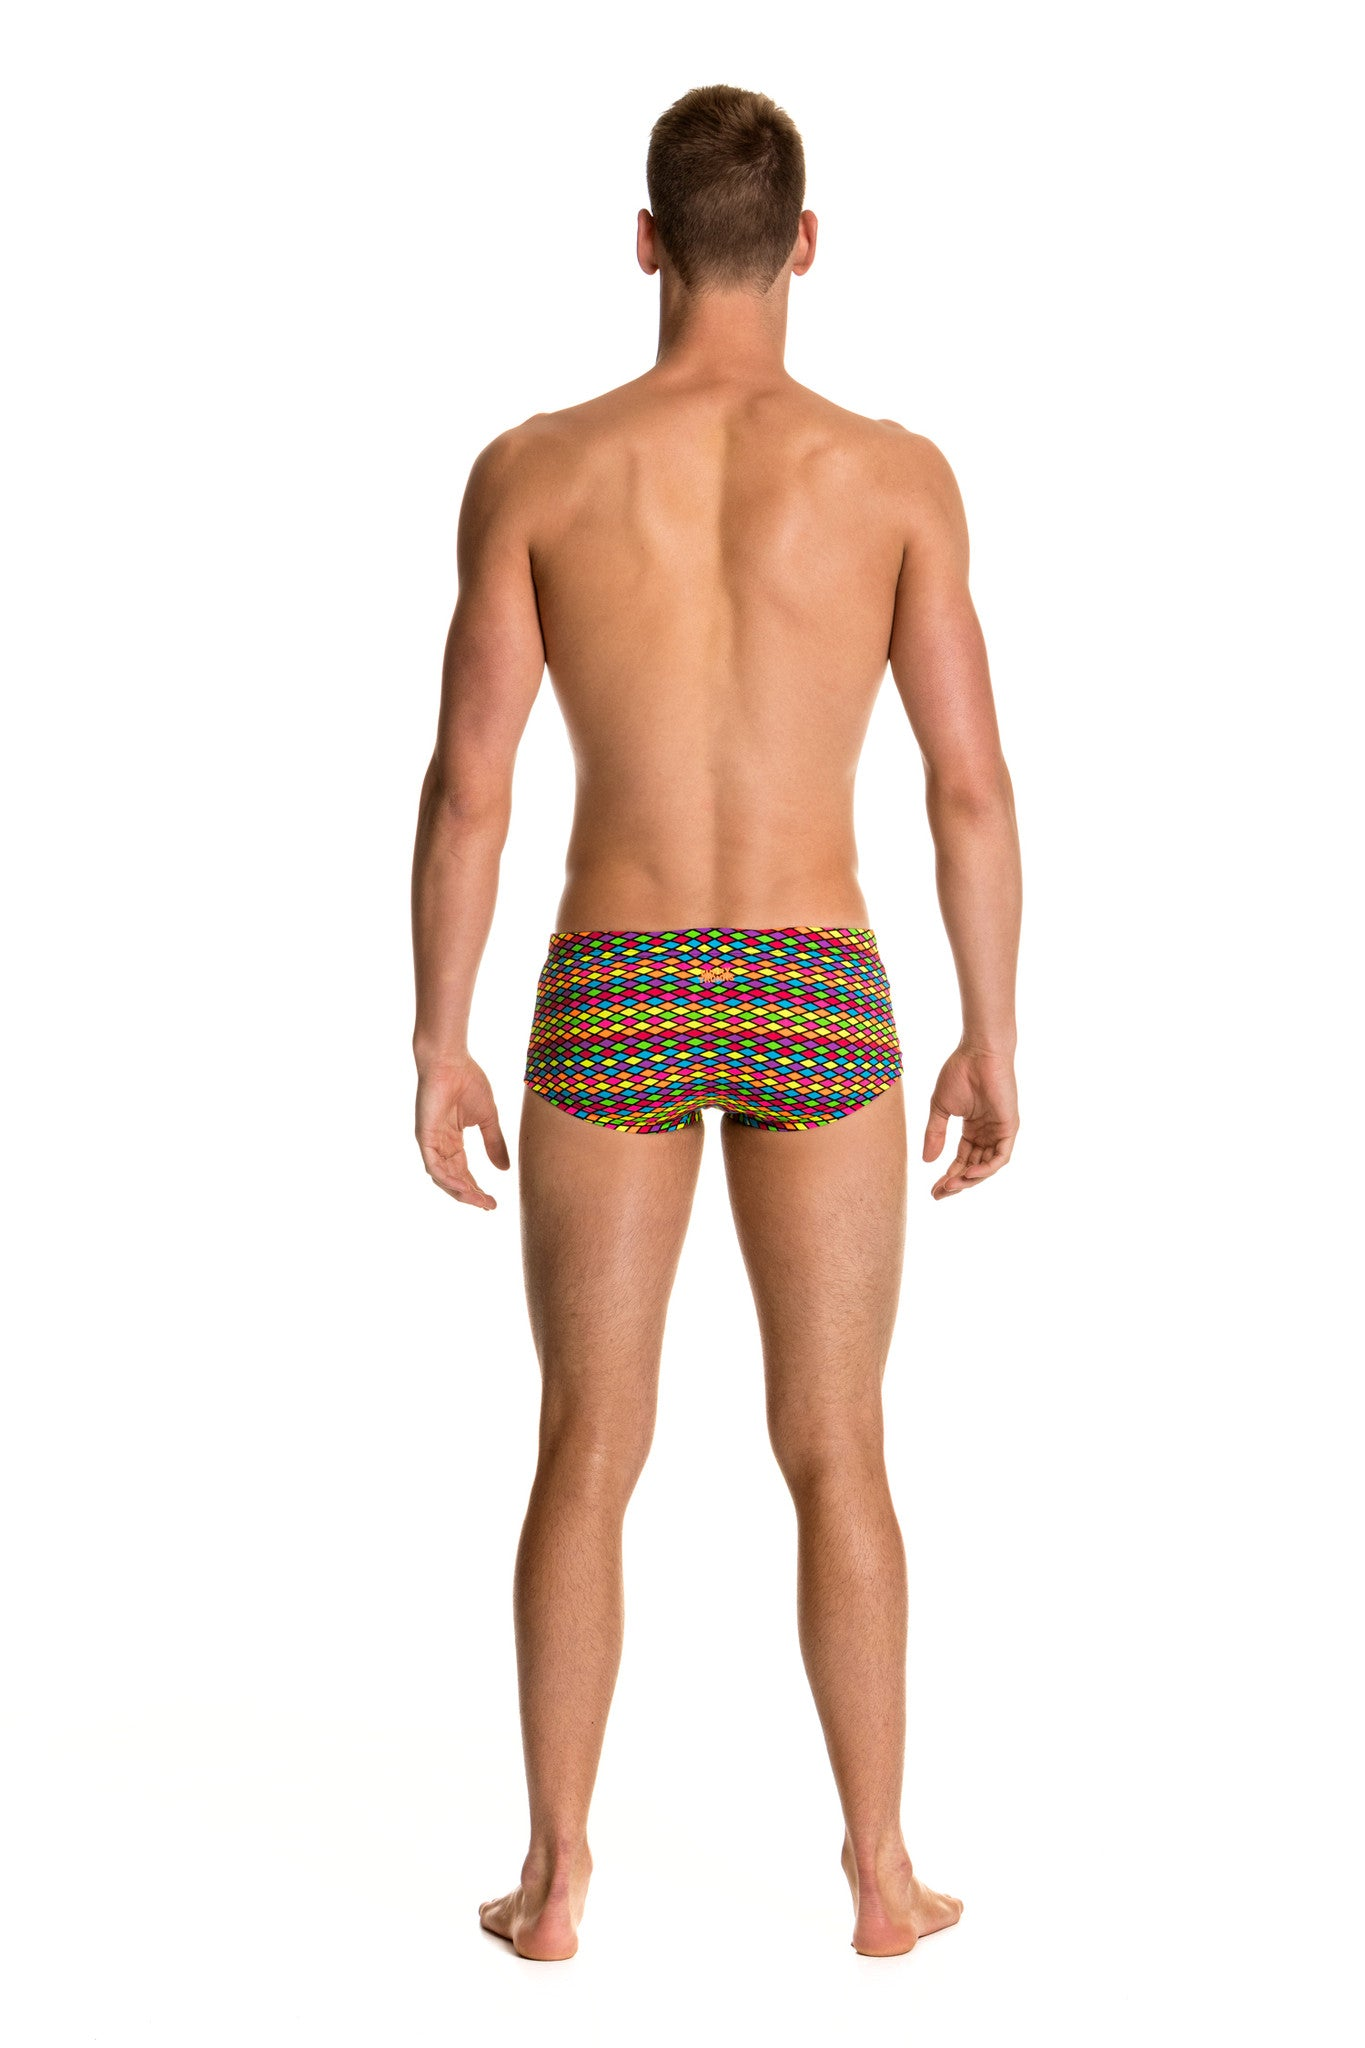 Funky Trunks Classic Trunks - Men's